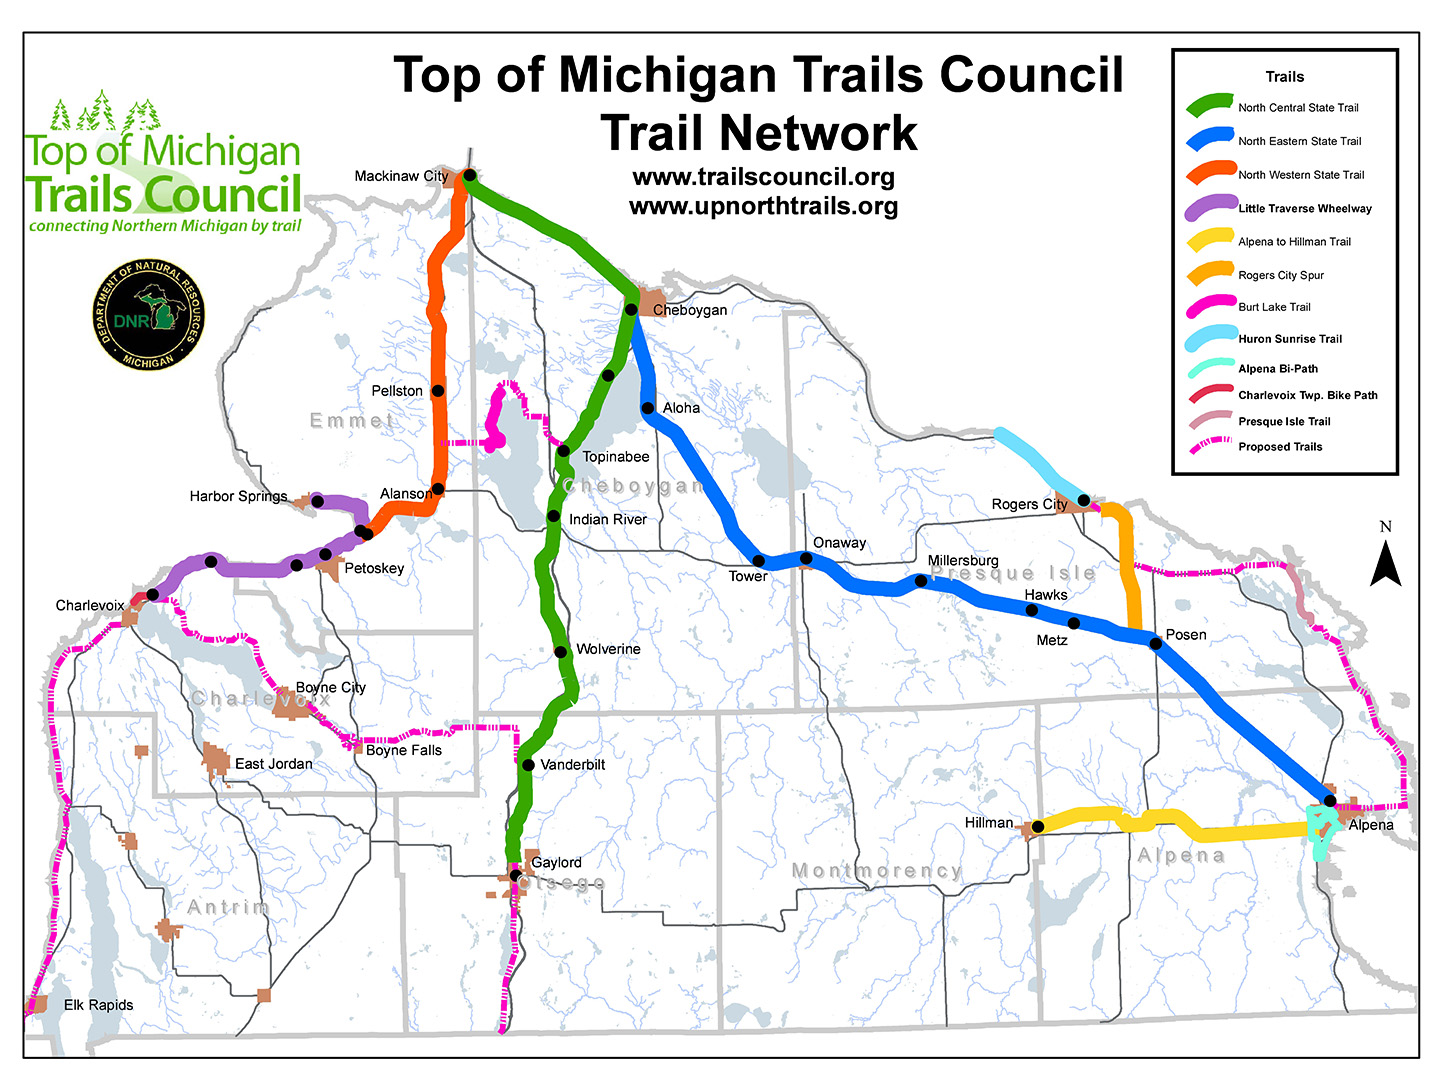 Biking Opportunities Abound in Northern Michigan